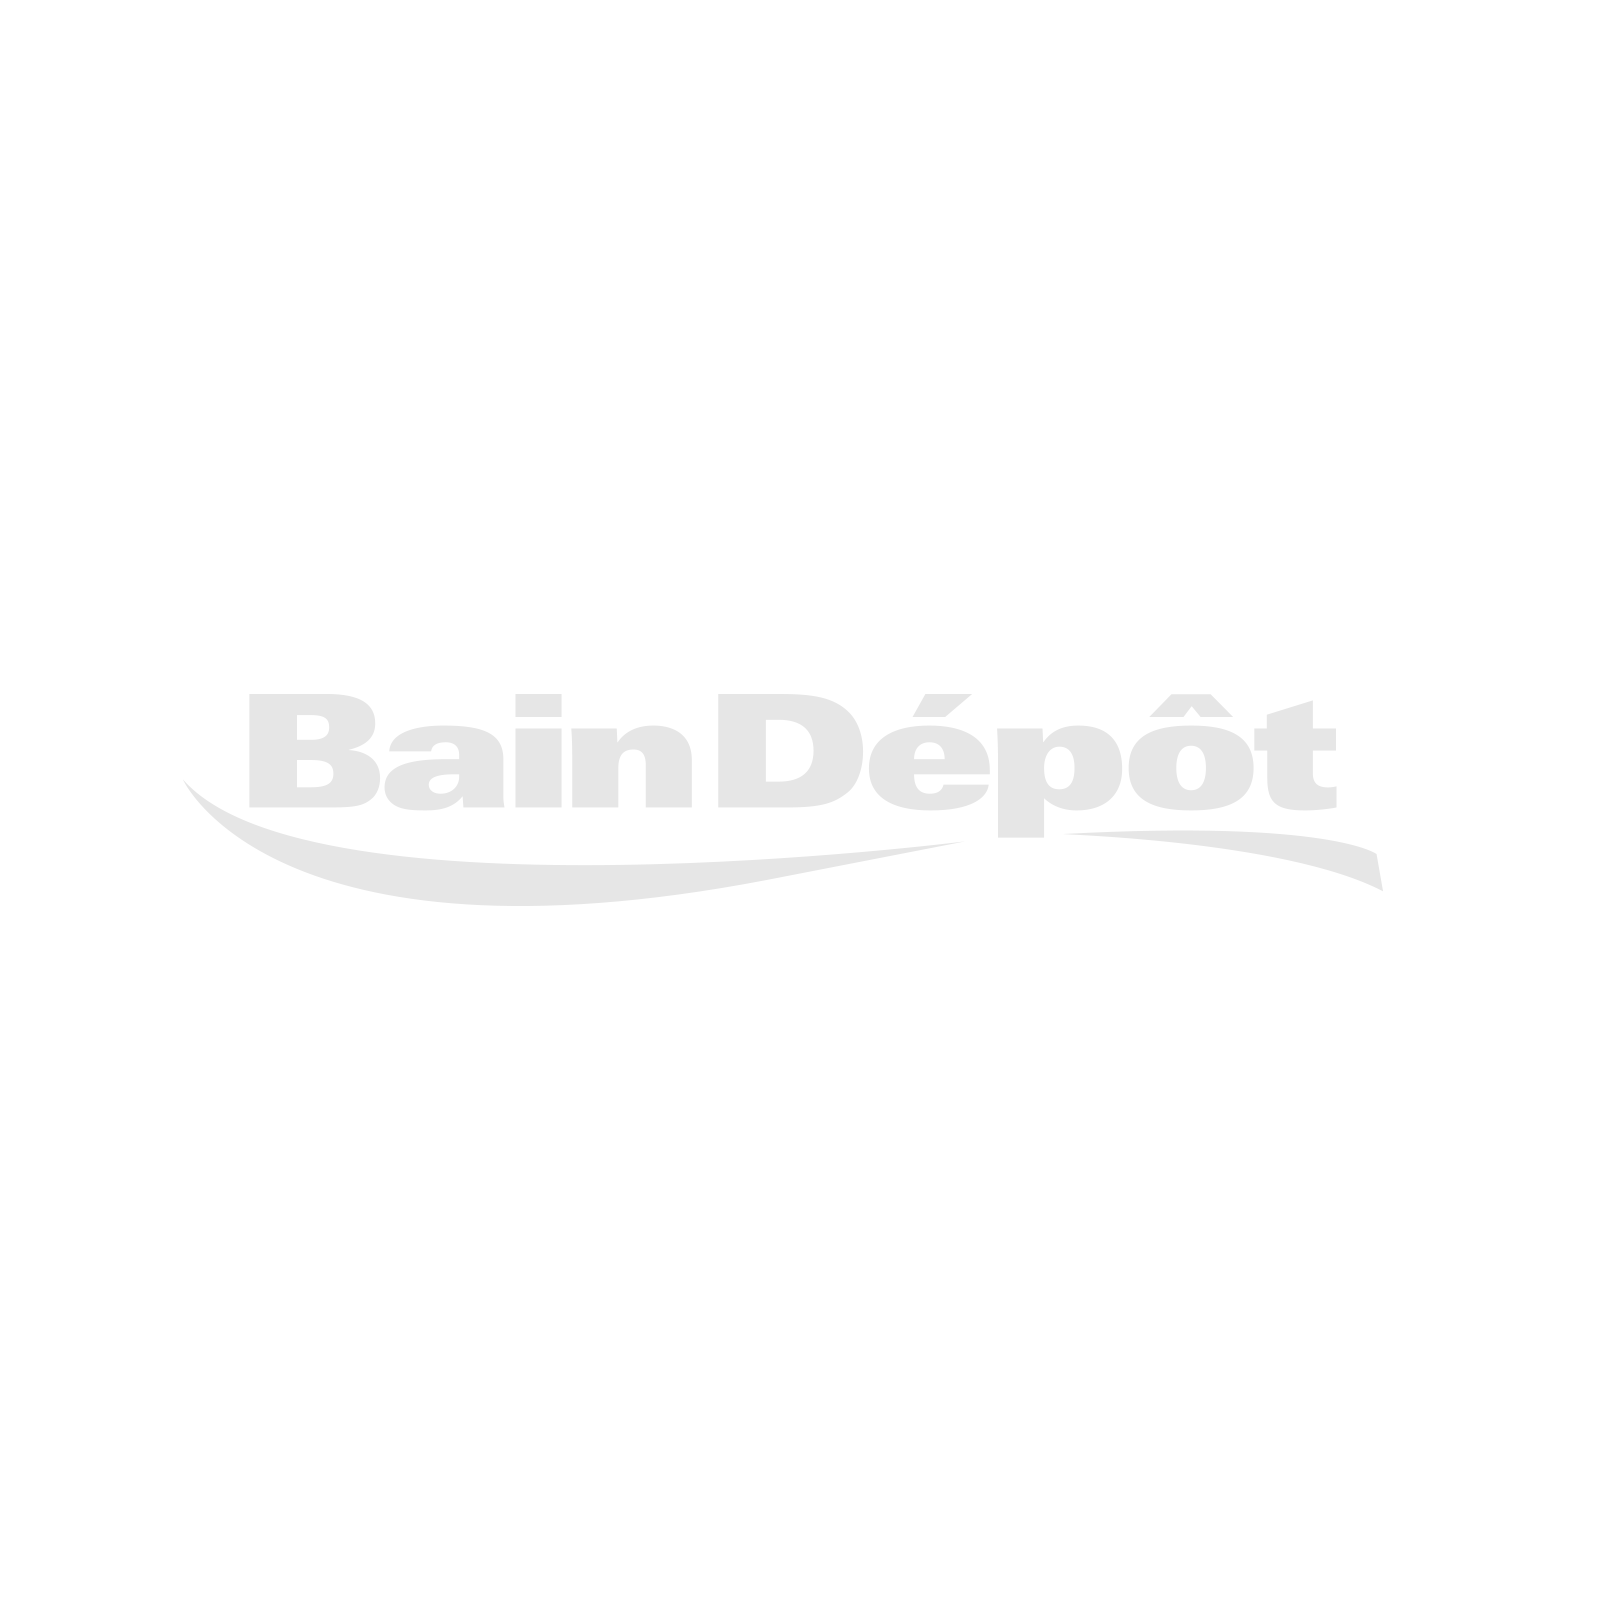 4-piece bathroom hardware kit